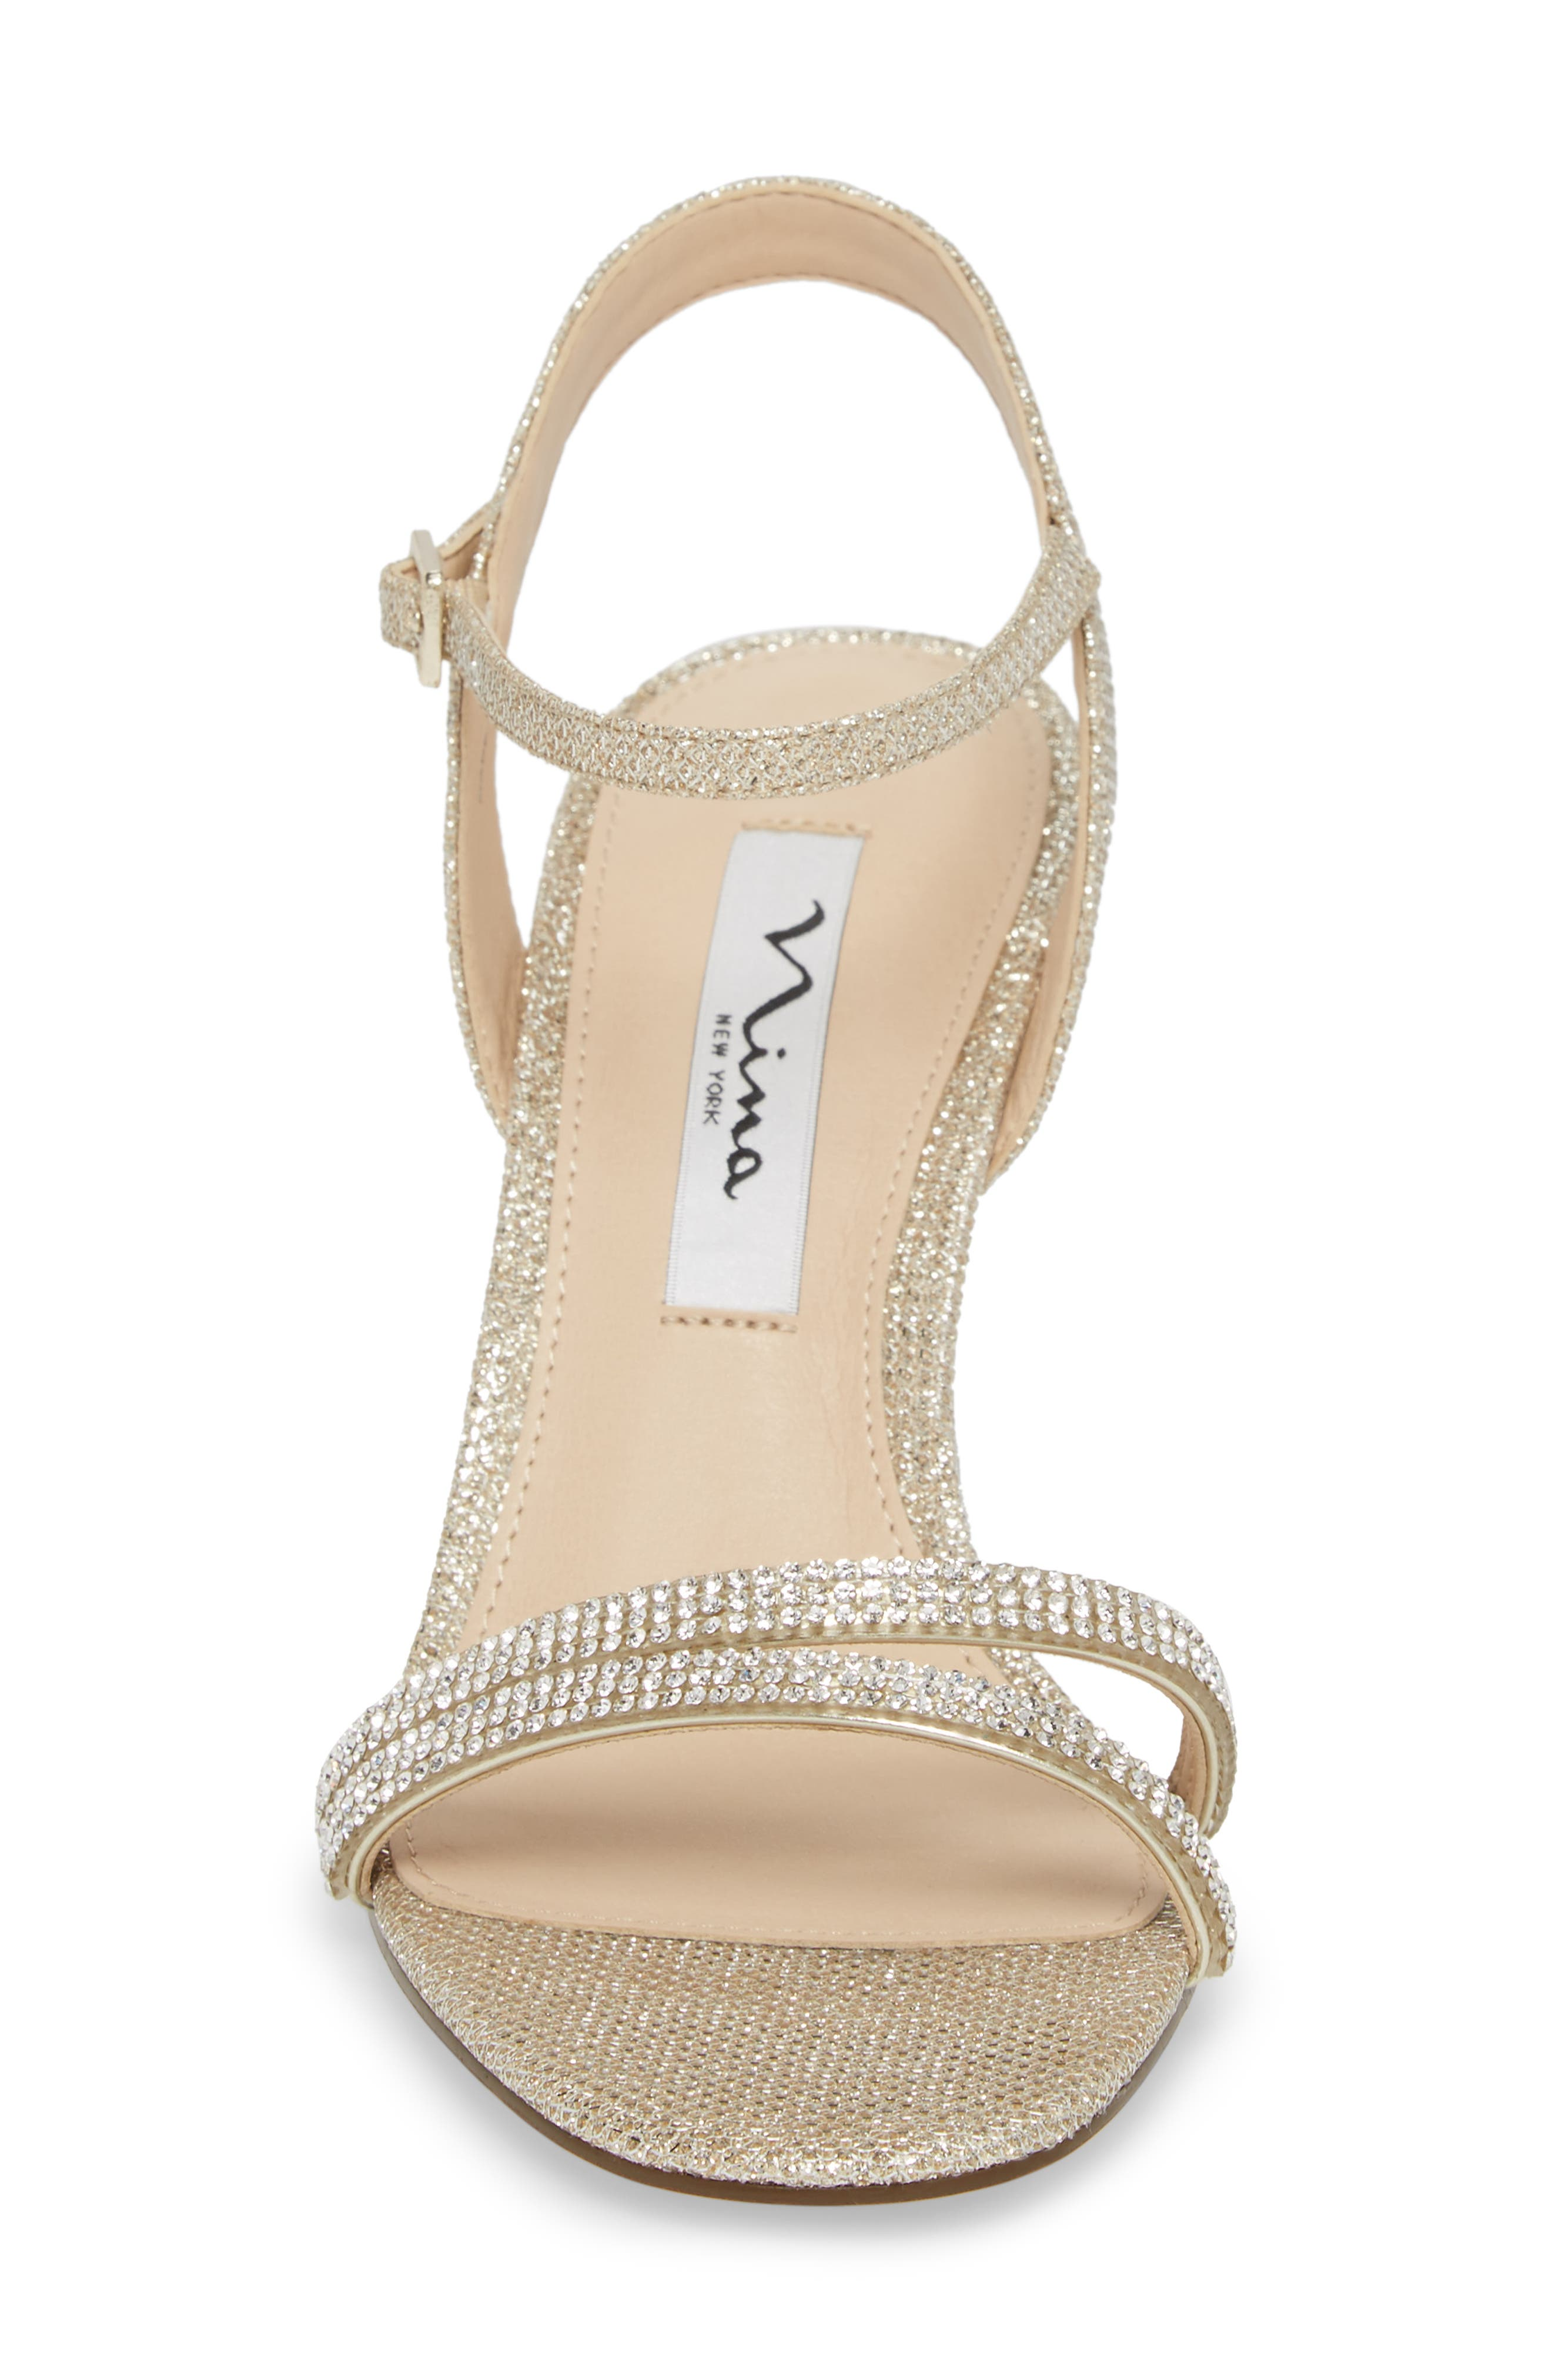 Avalon Ankle Strap Sandal,                             Alternate thumbnail 12, color,